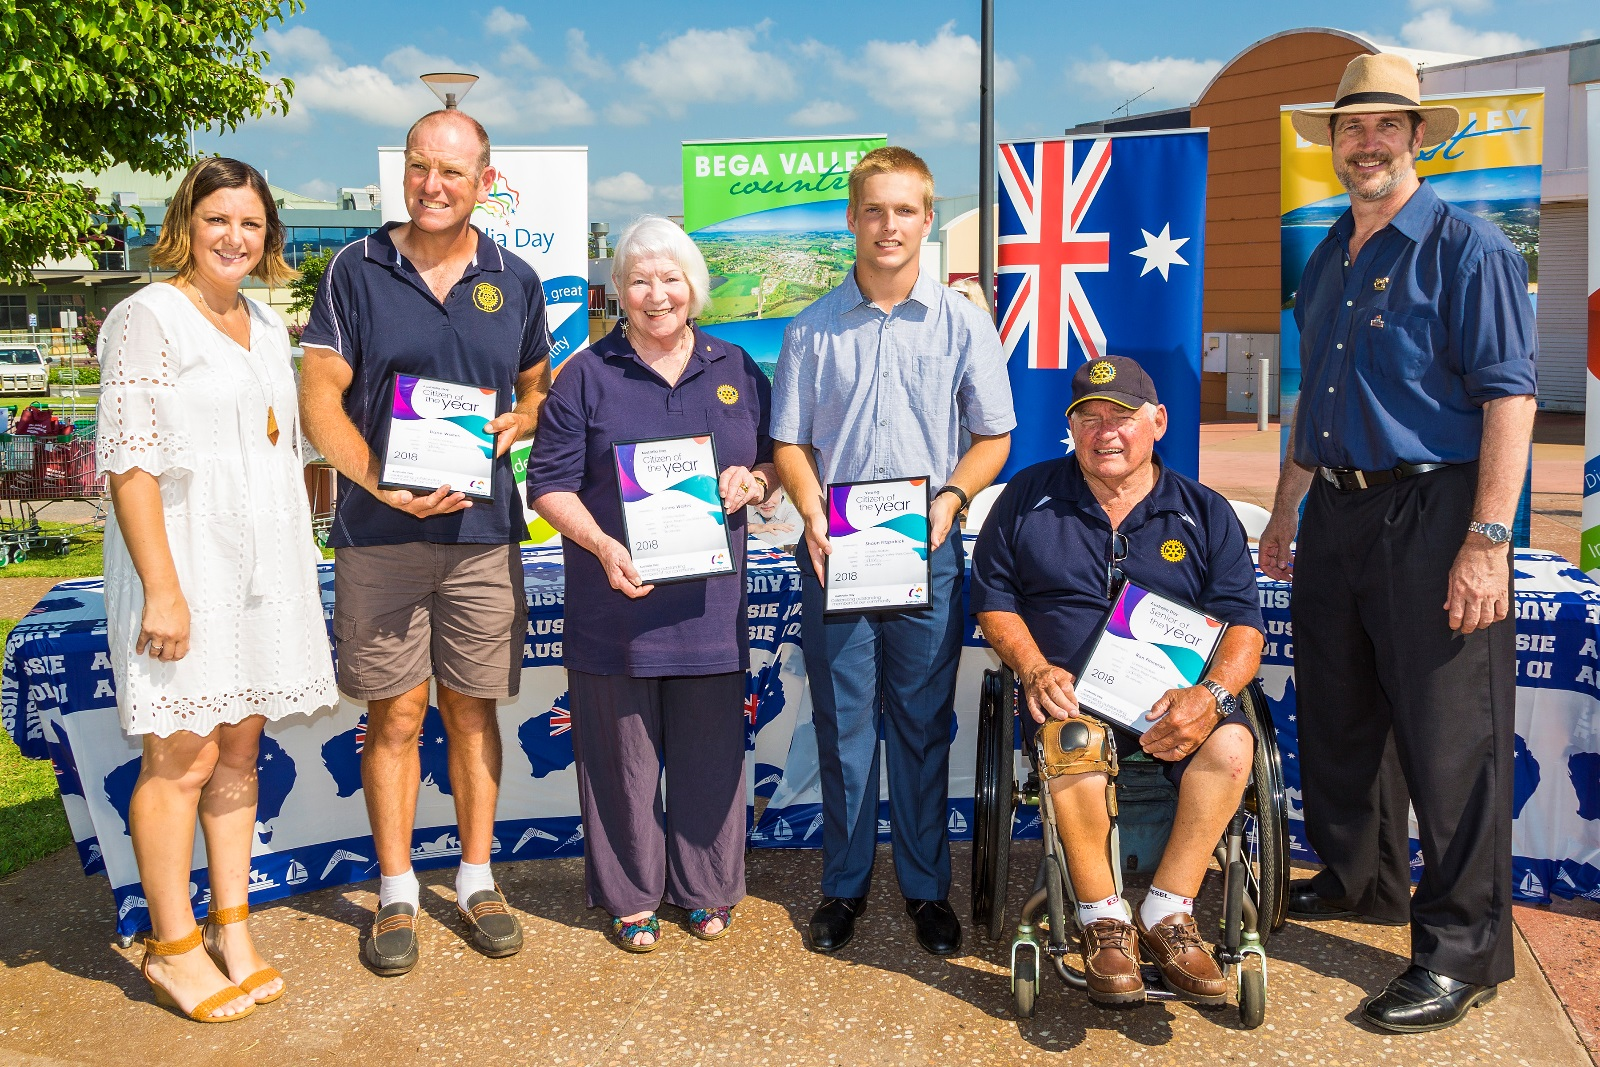 Mayor Kristy McBain with 2018 awardees Dane Waites, Junee Waites, Shaun Fitzpatrick, Ron Finneran, Australia Day Ambassador Nick Rheinberger.